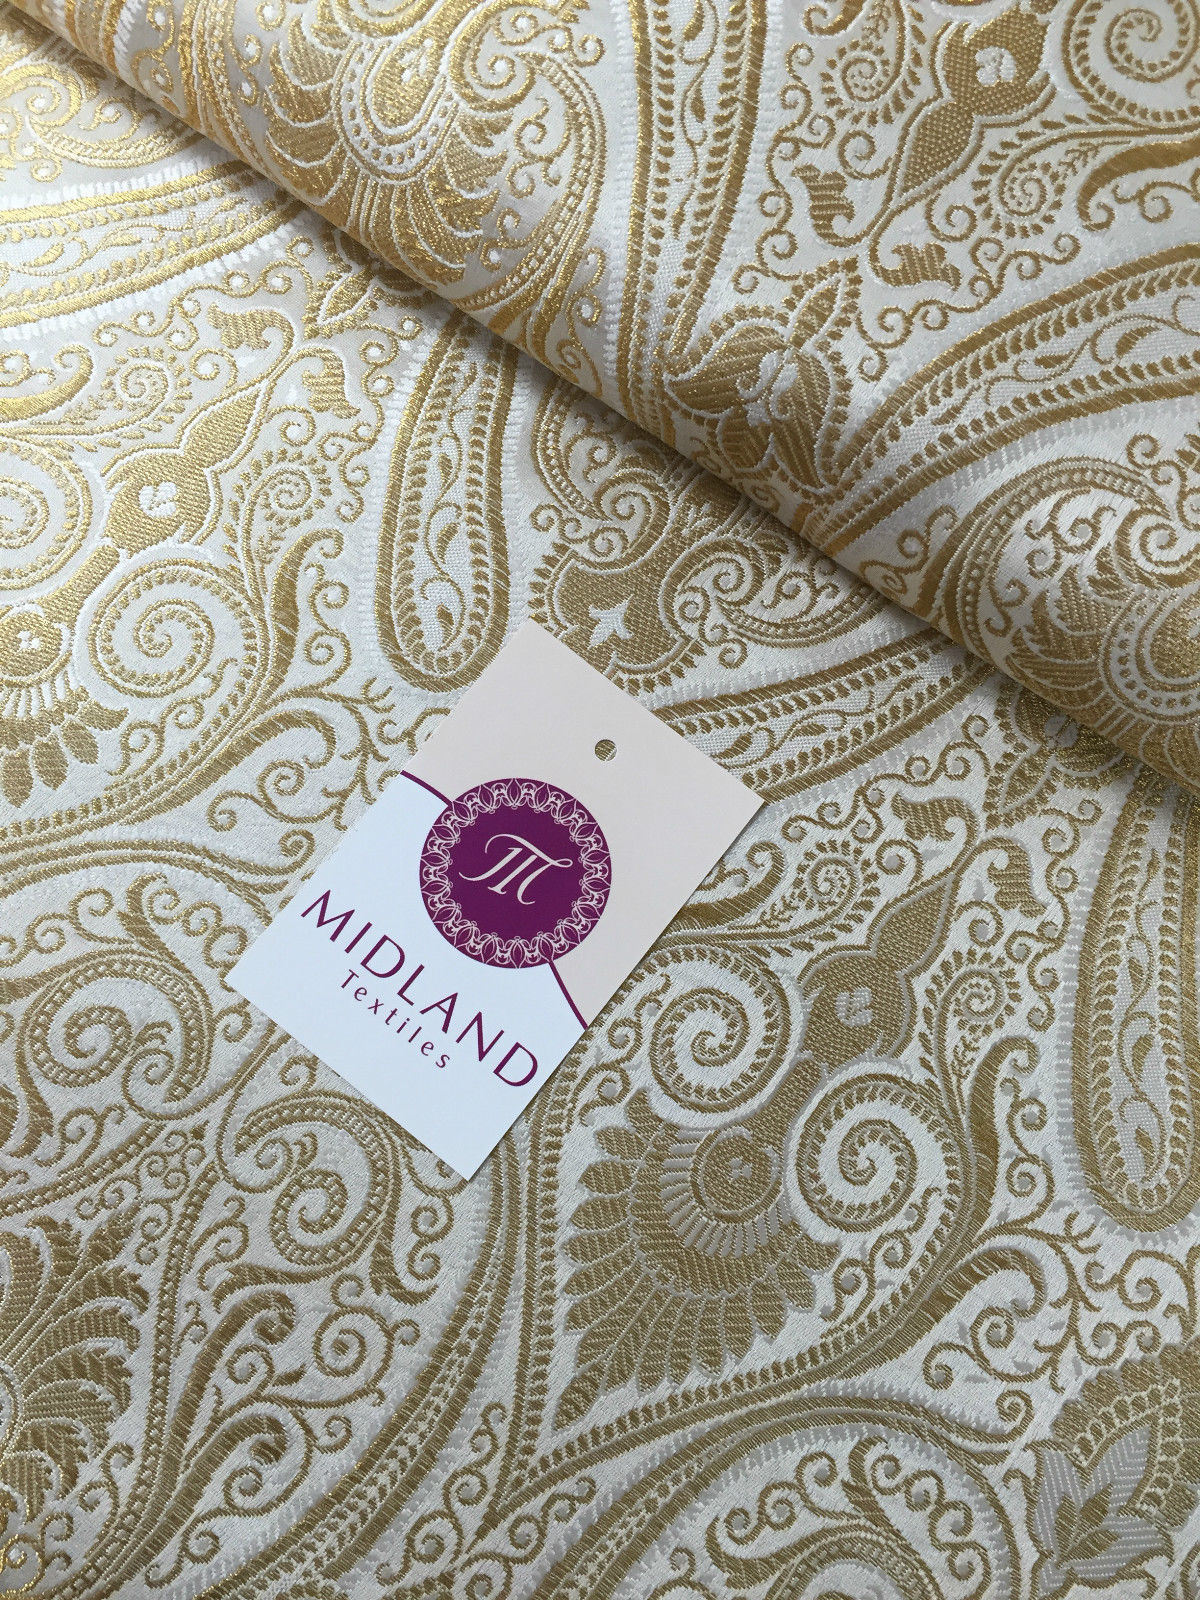 Ornamental paisley gold metallic print Indian banarsi Brocade fabric M246 Mtex